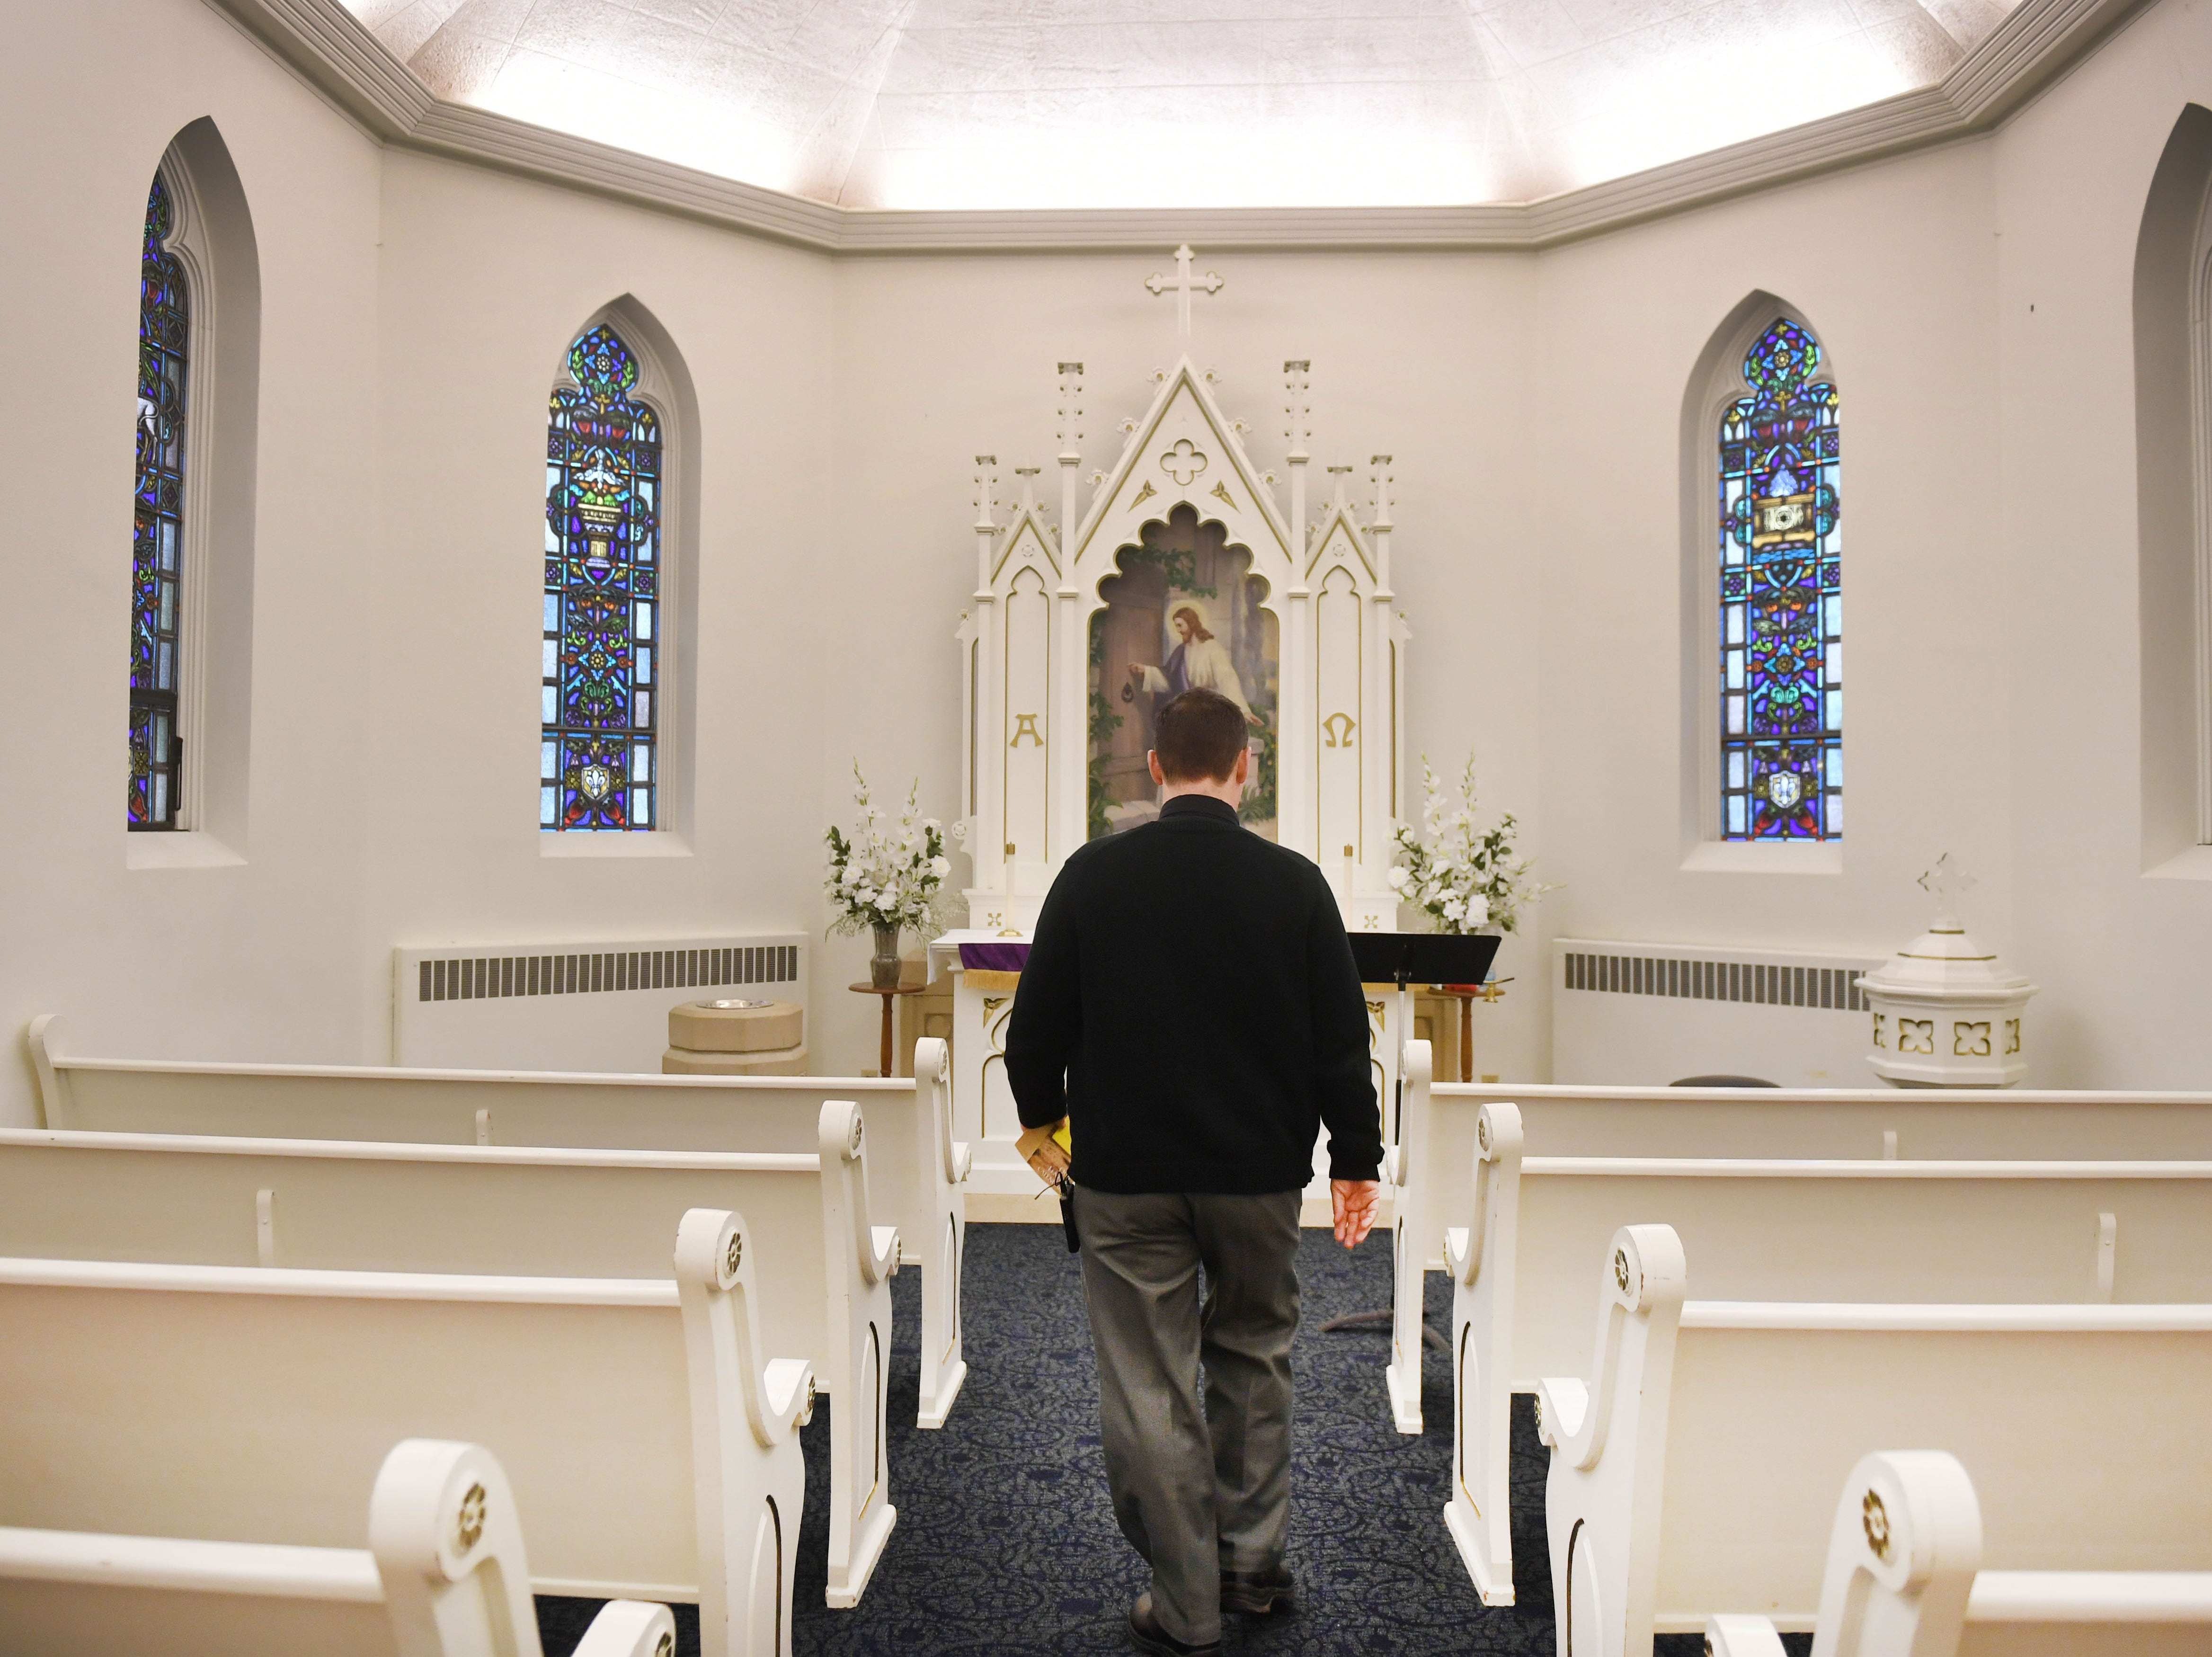 Pastor Layne Nelson walks through the chapel room at East Side Lutheran Church Wednesday, April 10, before noon service in Sioux Falls. Nelson said the alter in the chapel room is the original alter from the original church down the street.